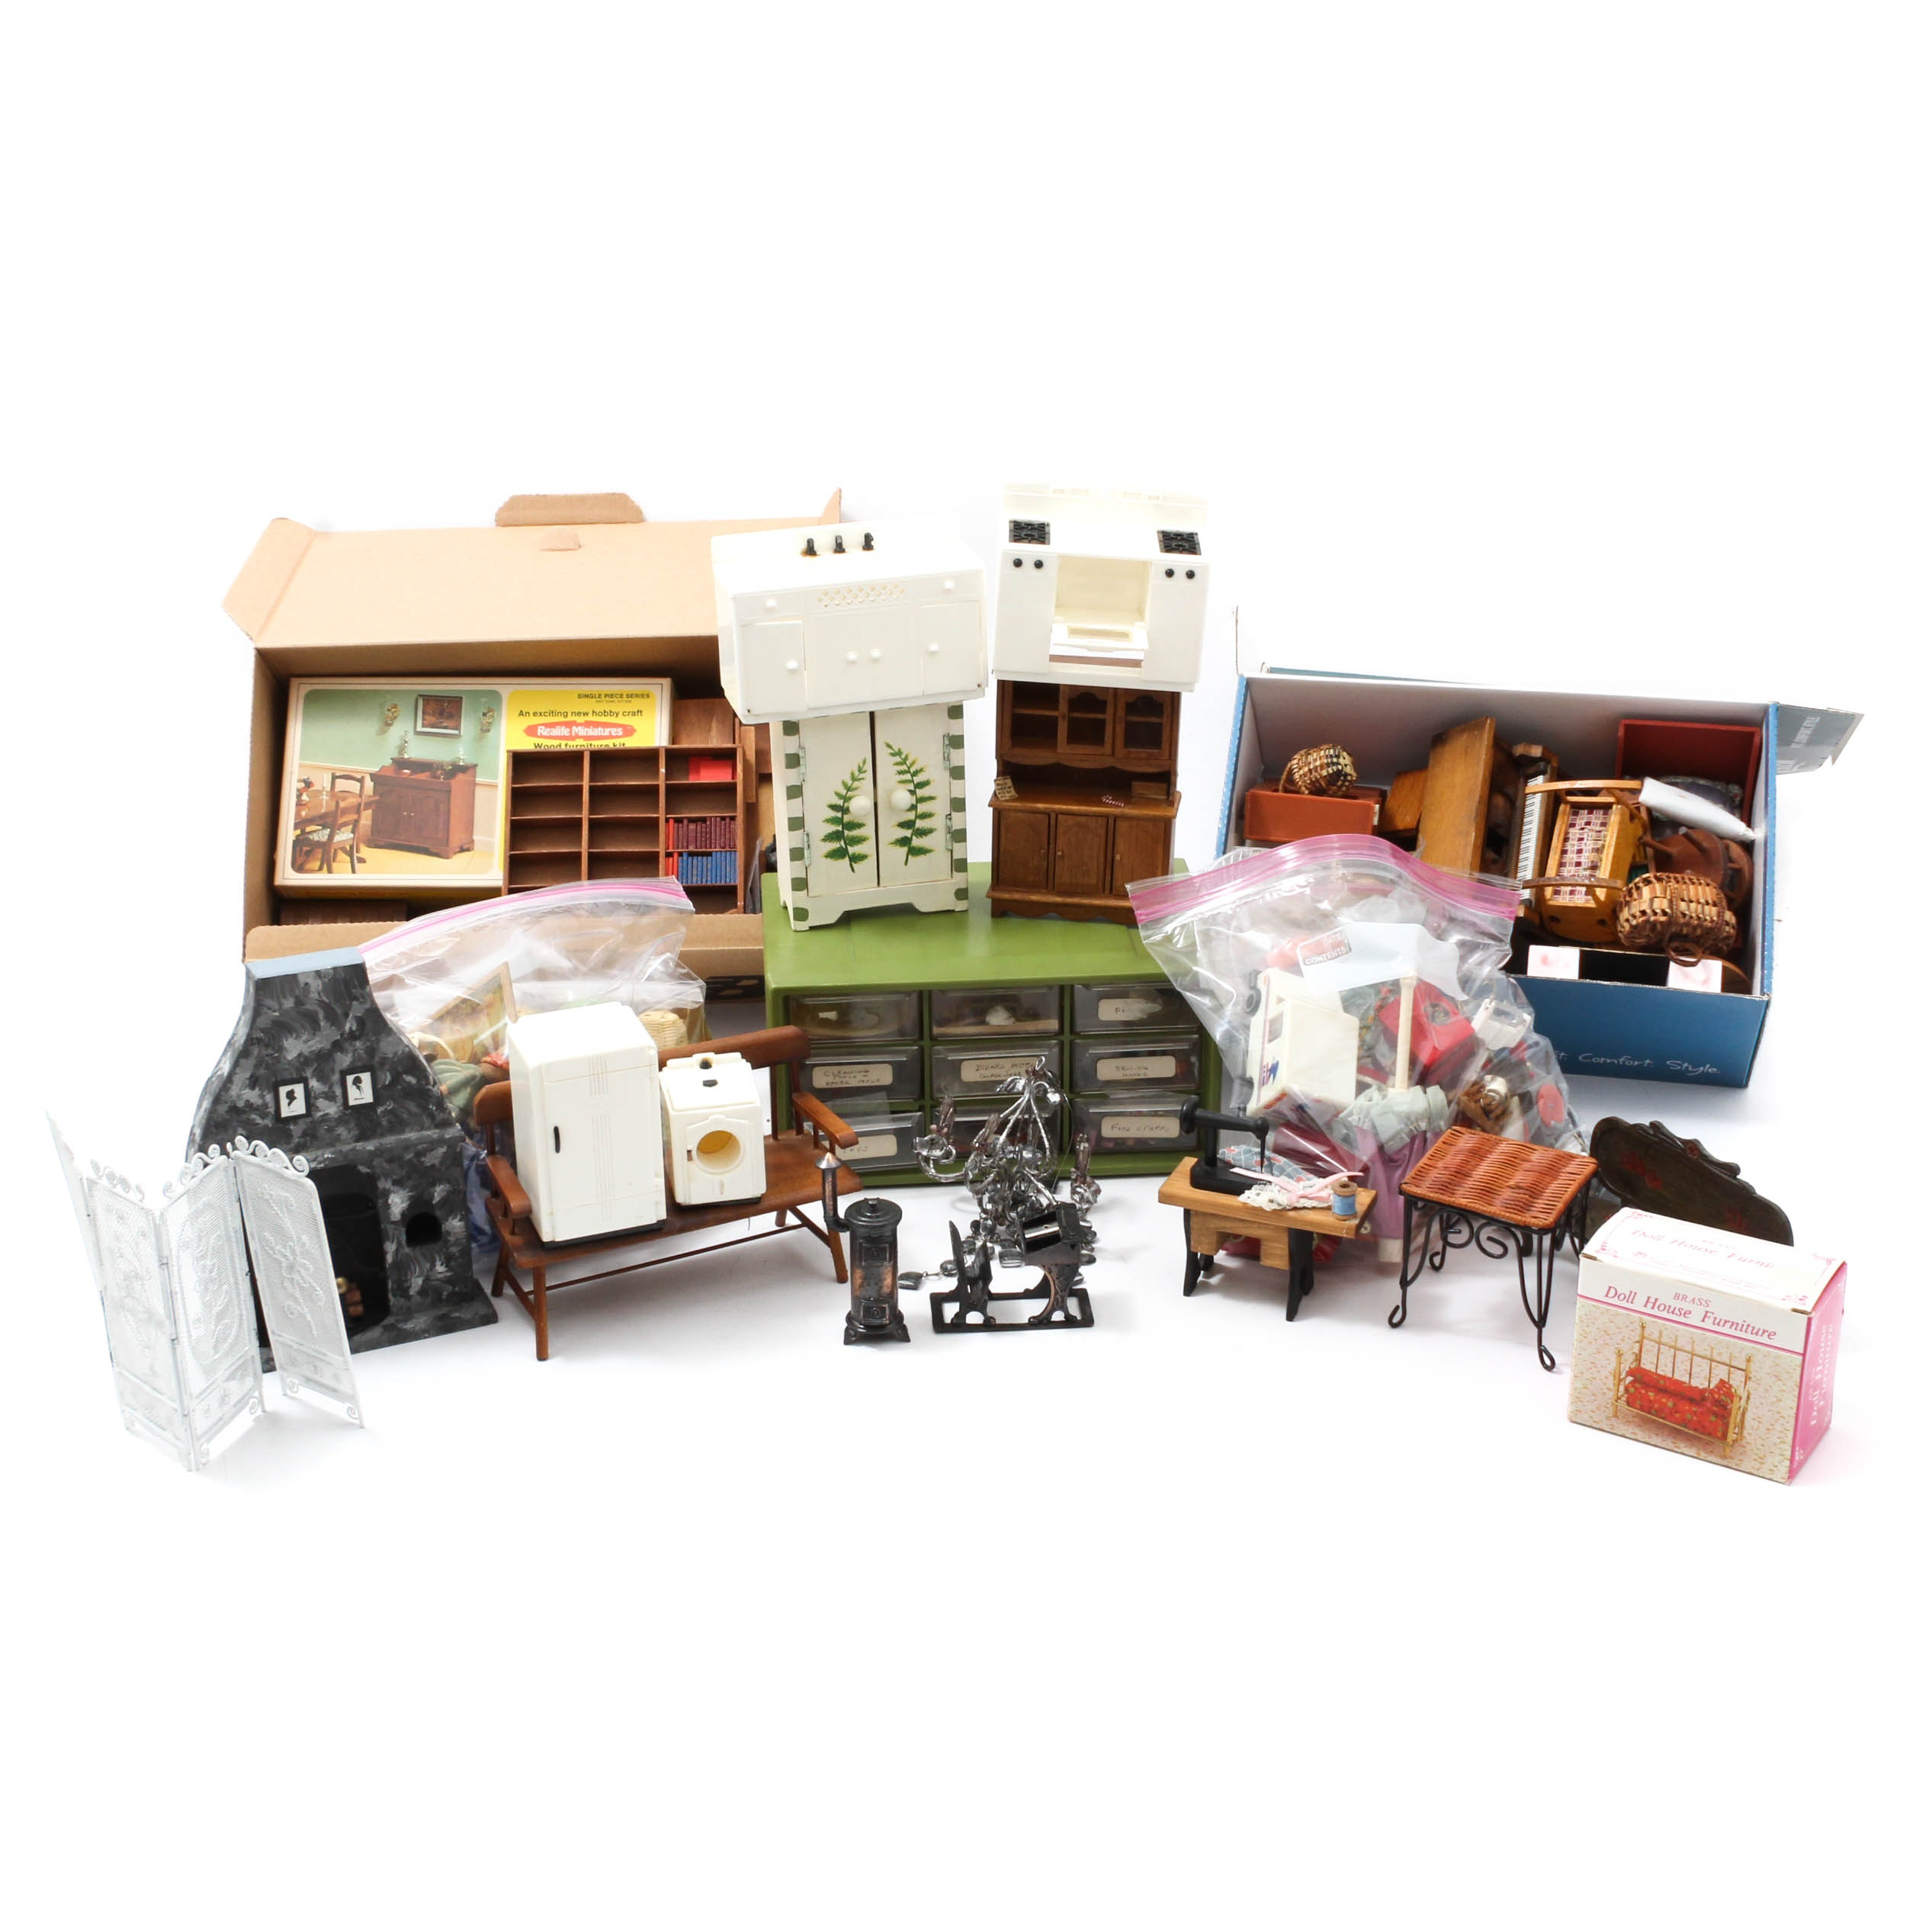 Vintage Dollhouse Furniture And Accessories Ebth